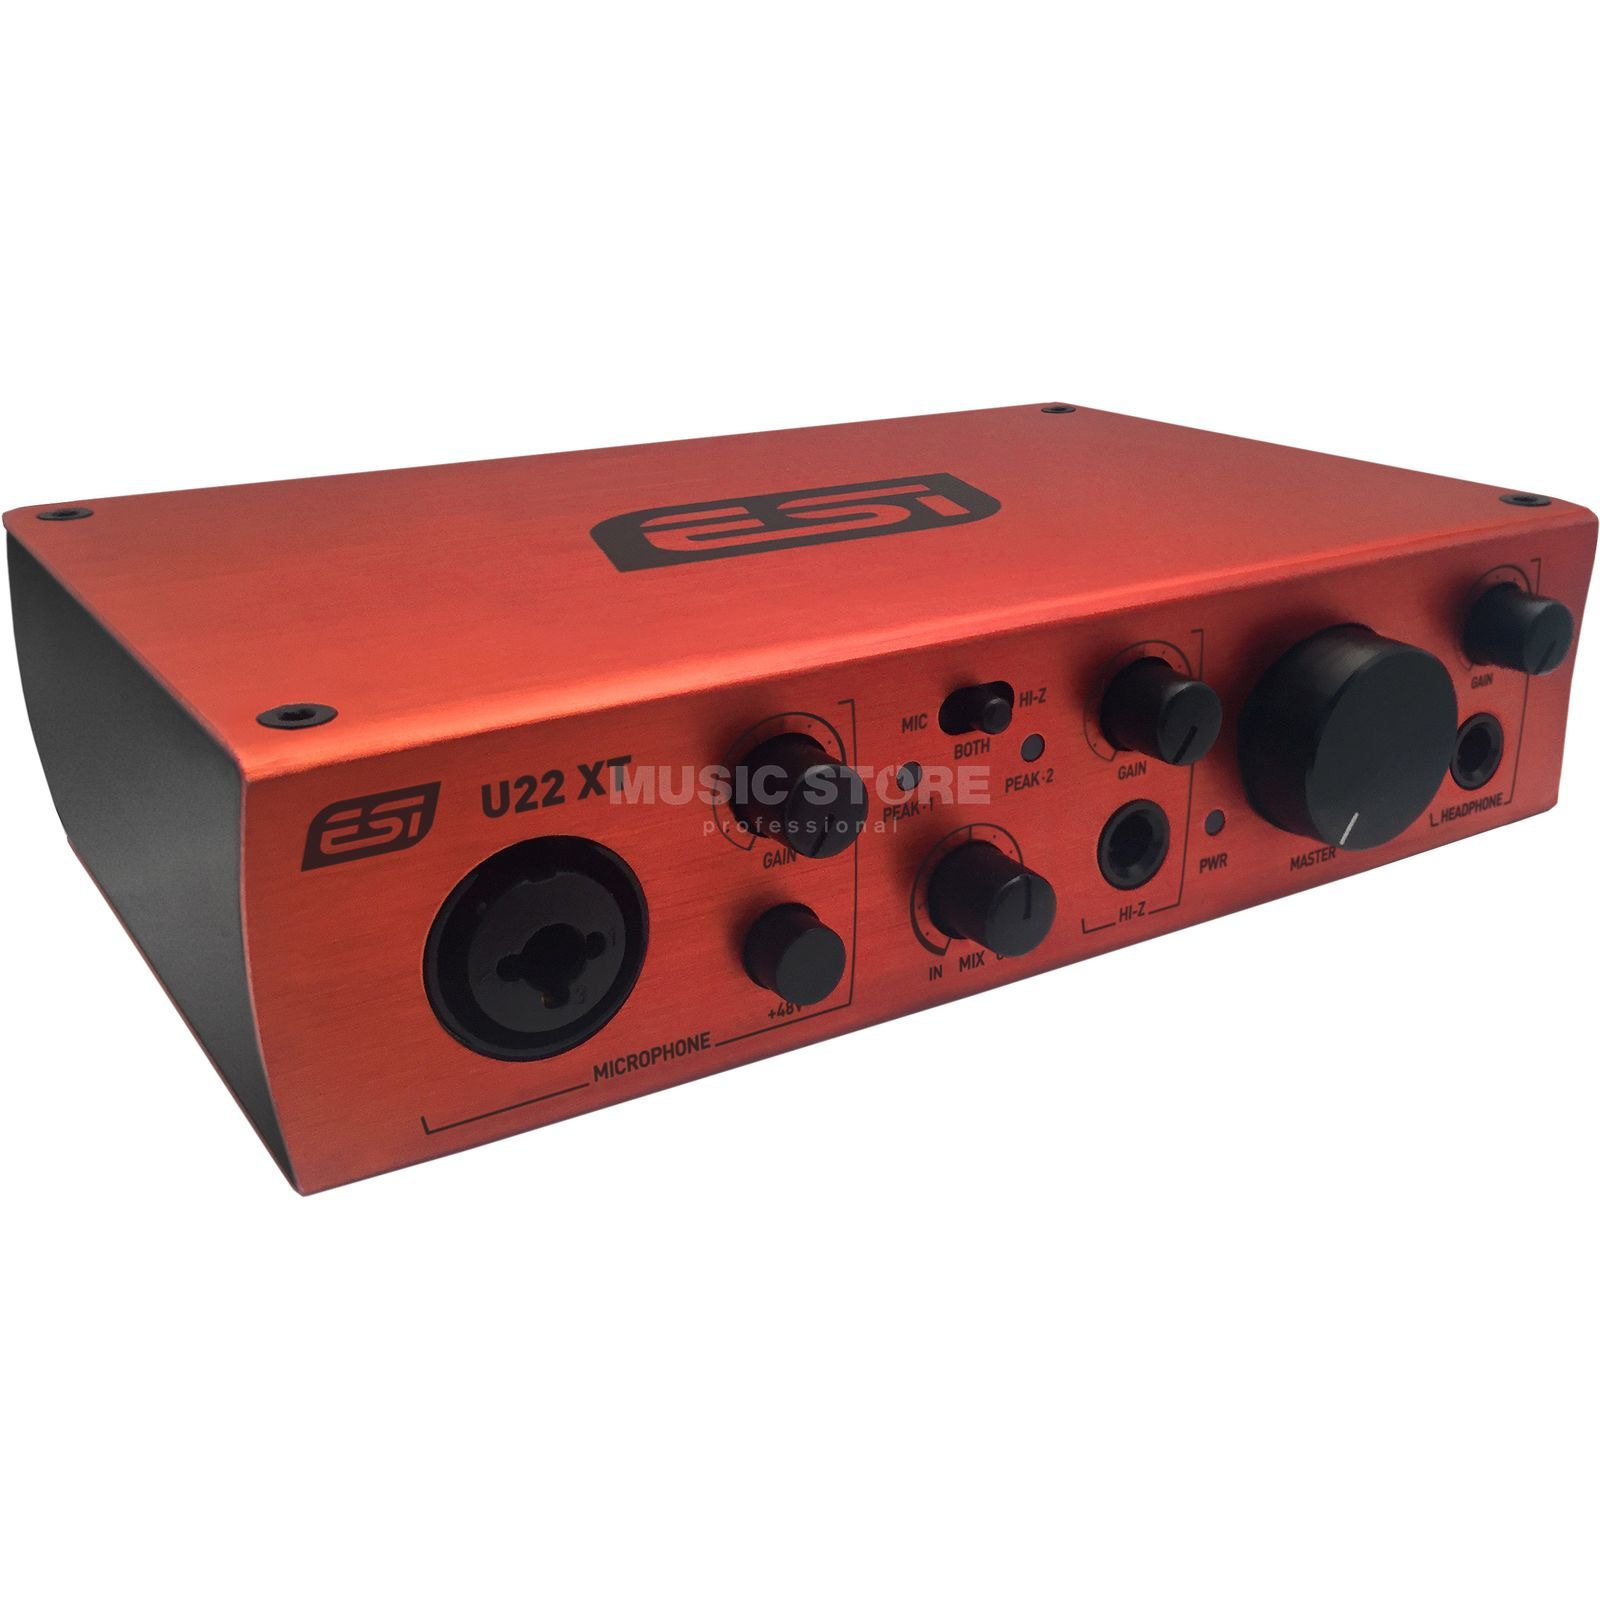 ESI U22 XT USB Audio-Interface Produktbillede